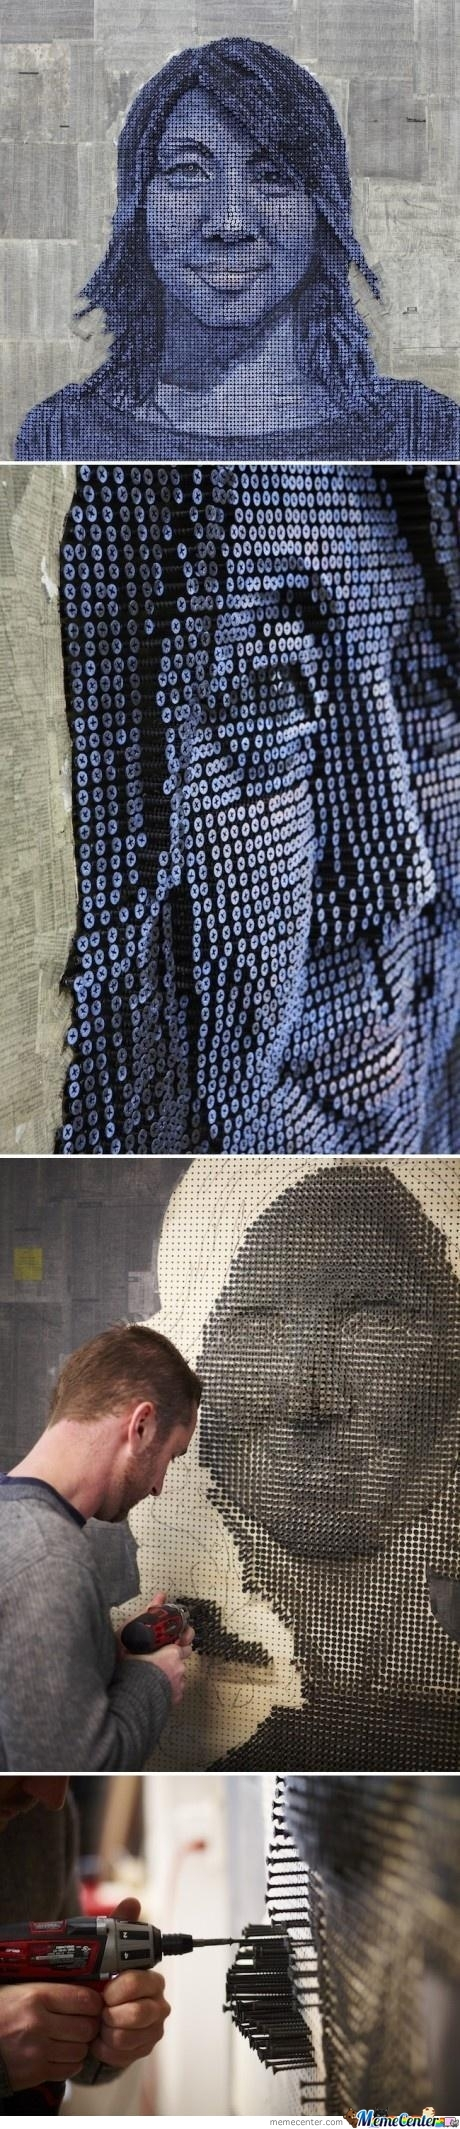 Thousands Of Screws Make A 3D Portrait